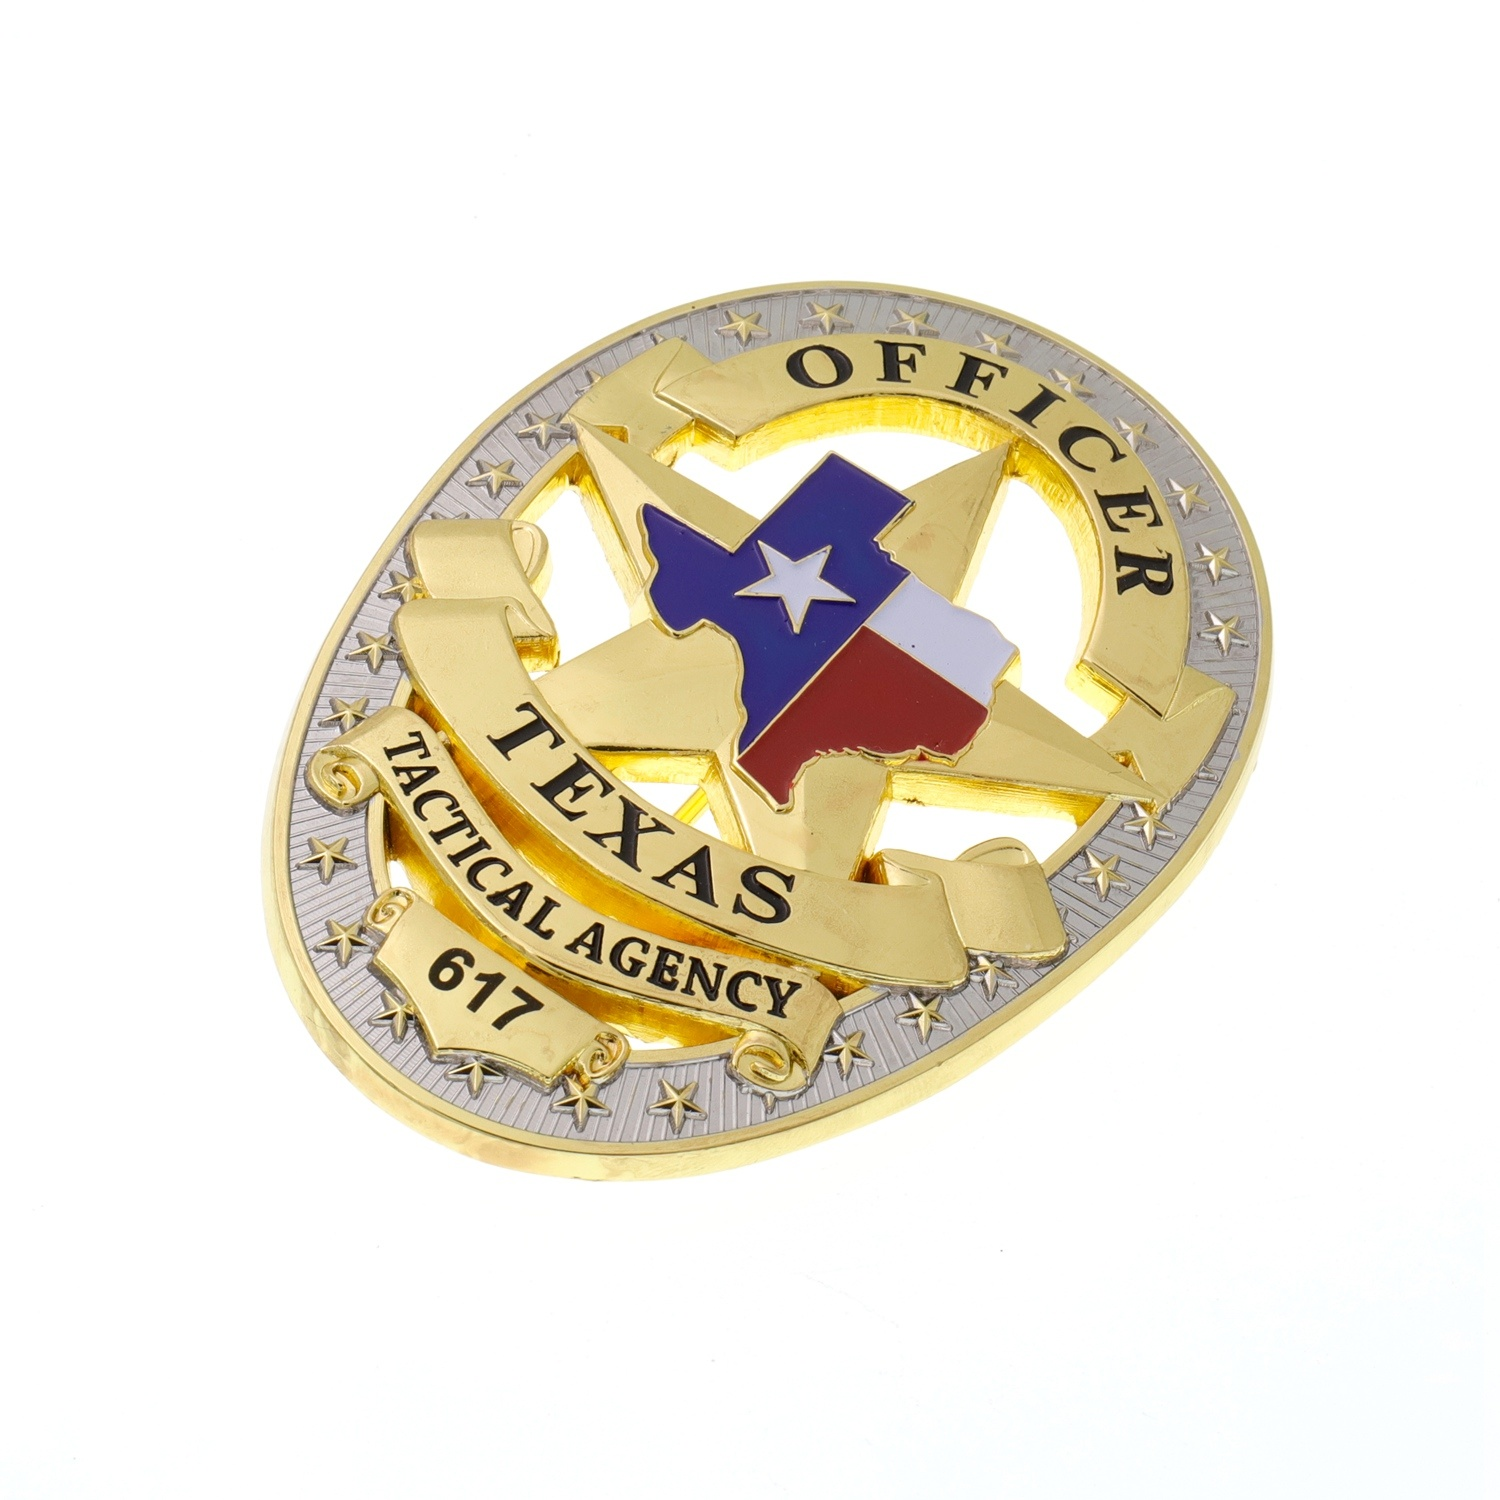 [Hot Item] Factory Custom Zinc Alloy Gold Plating Personalized 3D Emblem  Award Military Army Us Police Pins Badges School Sport Enamel Metal Crafts